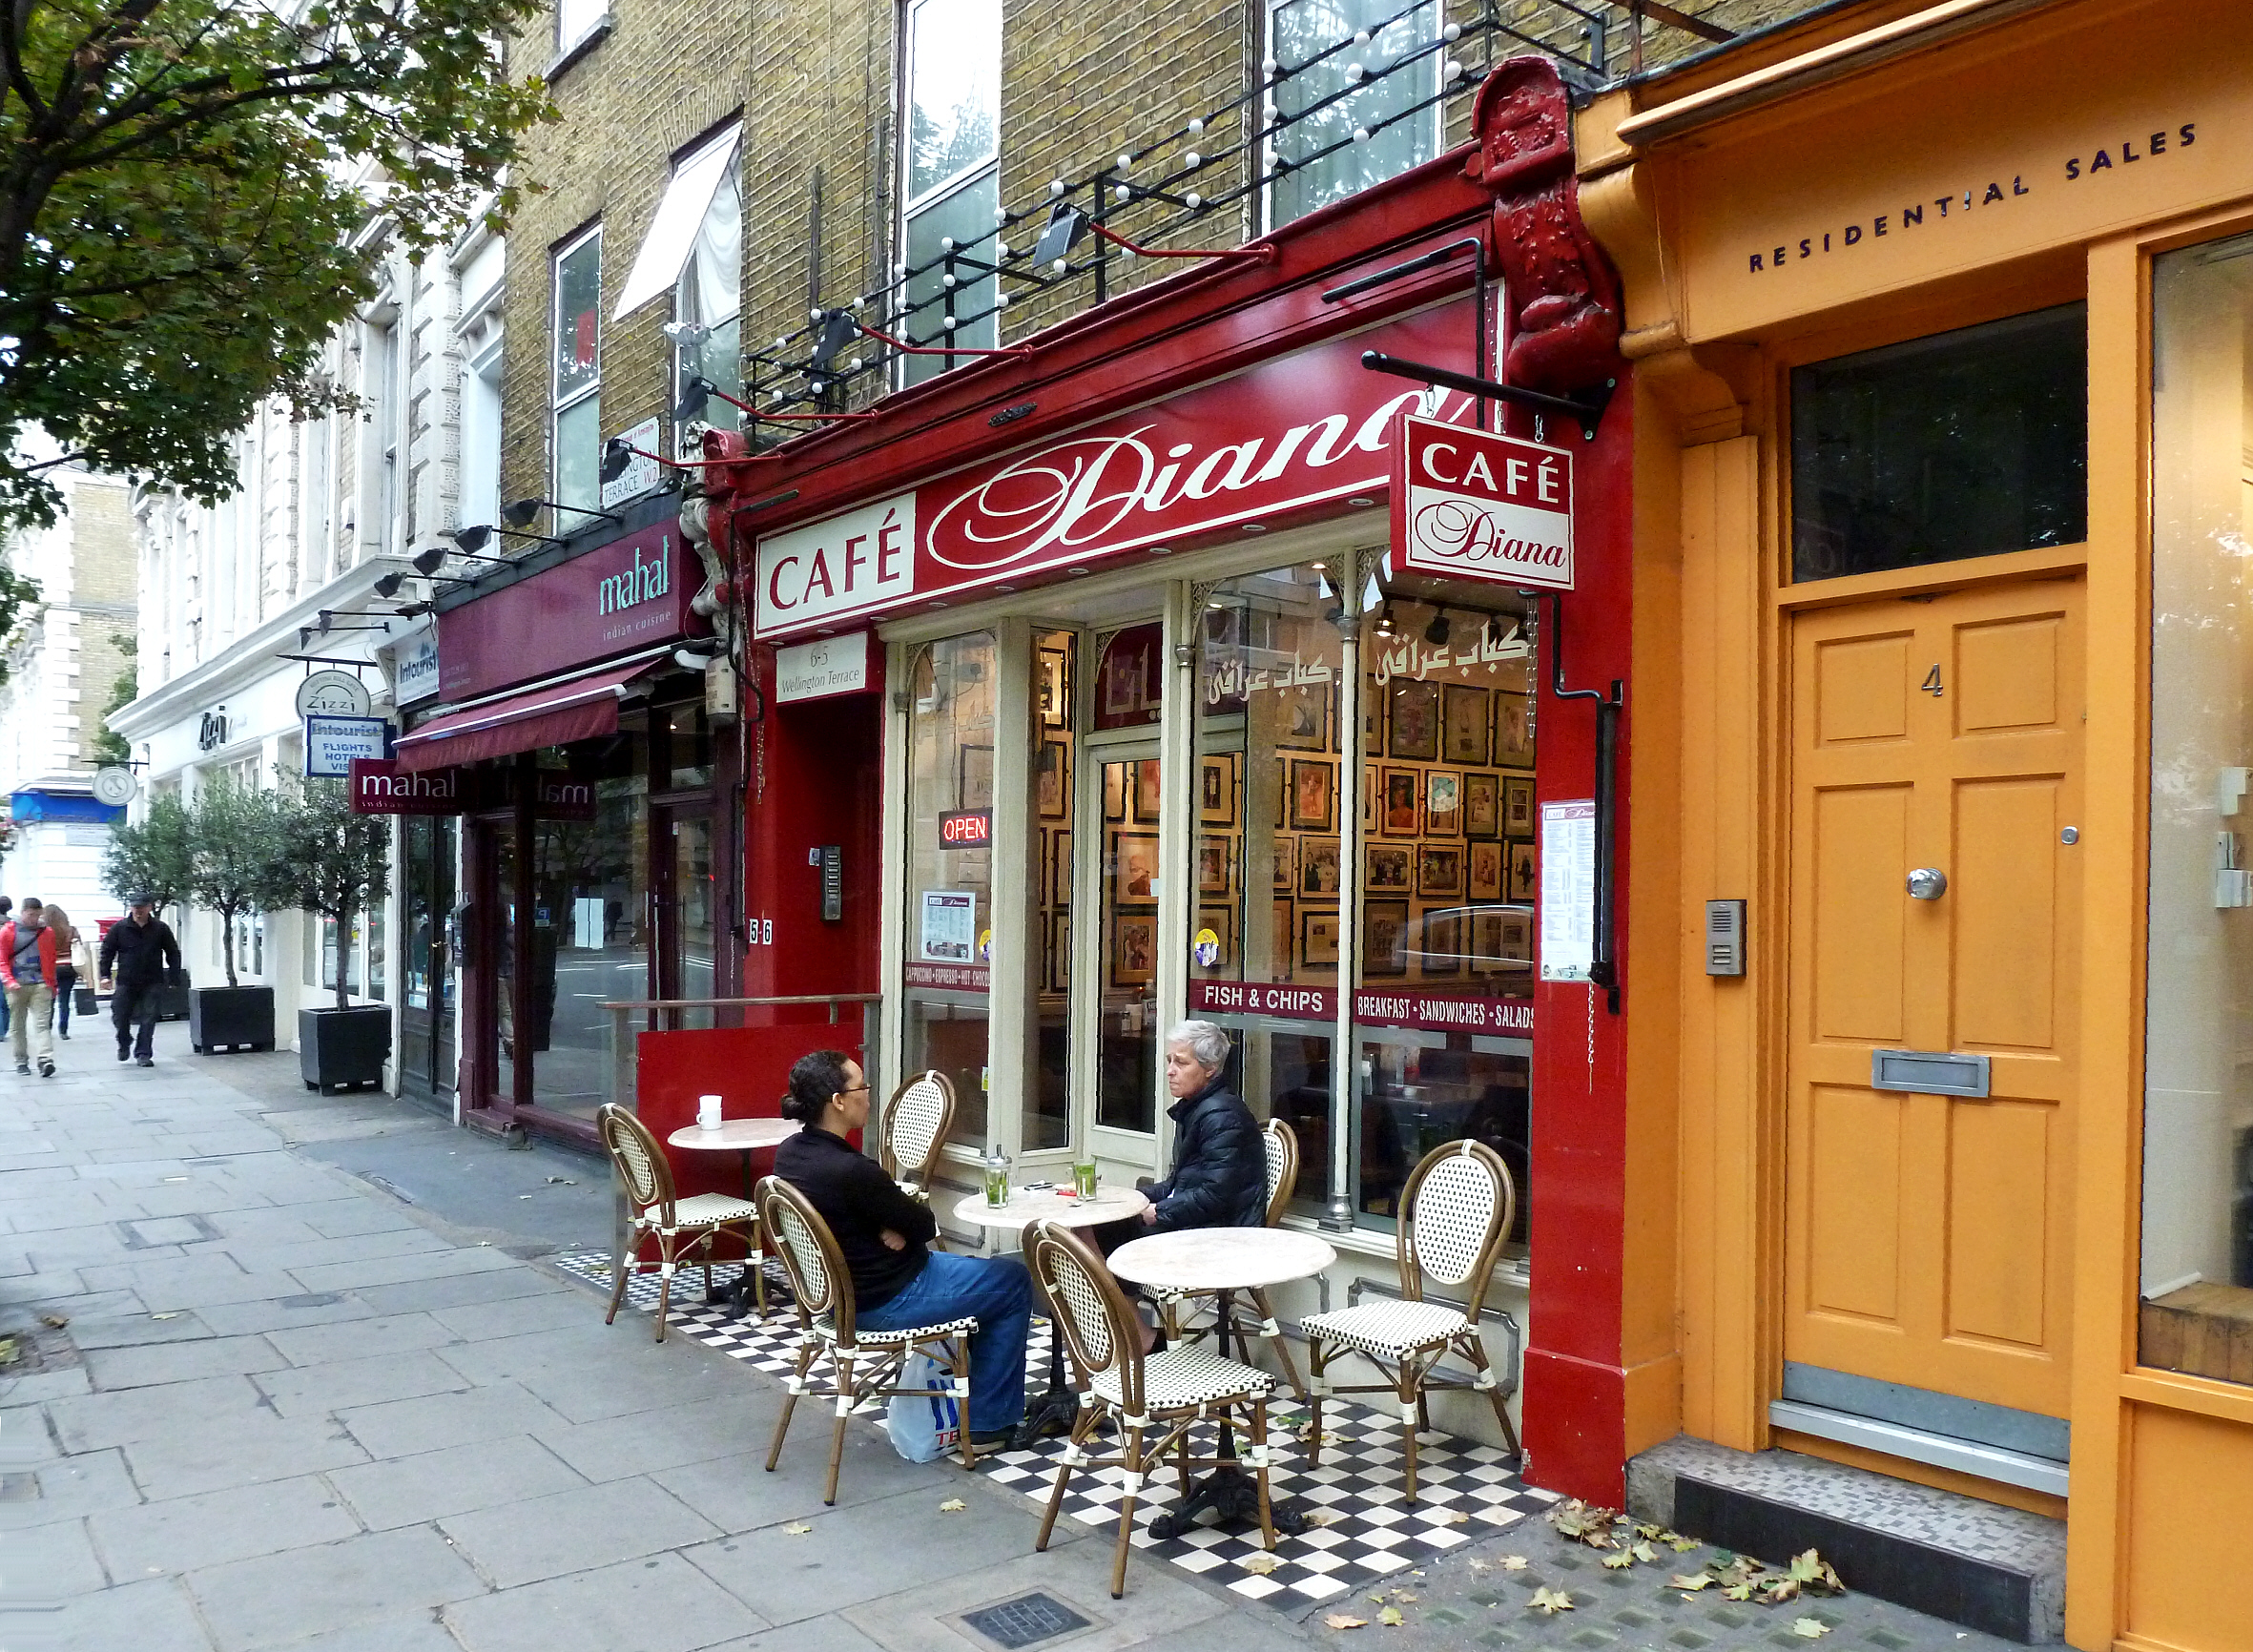 Cafe Diana London What Coffee Do They Use